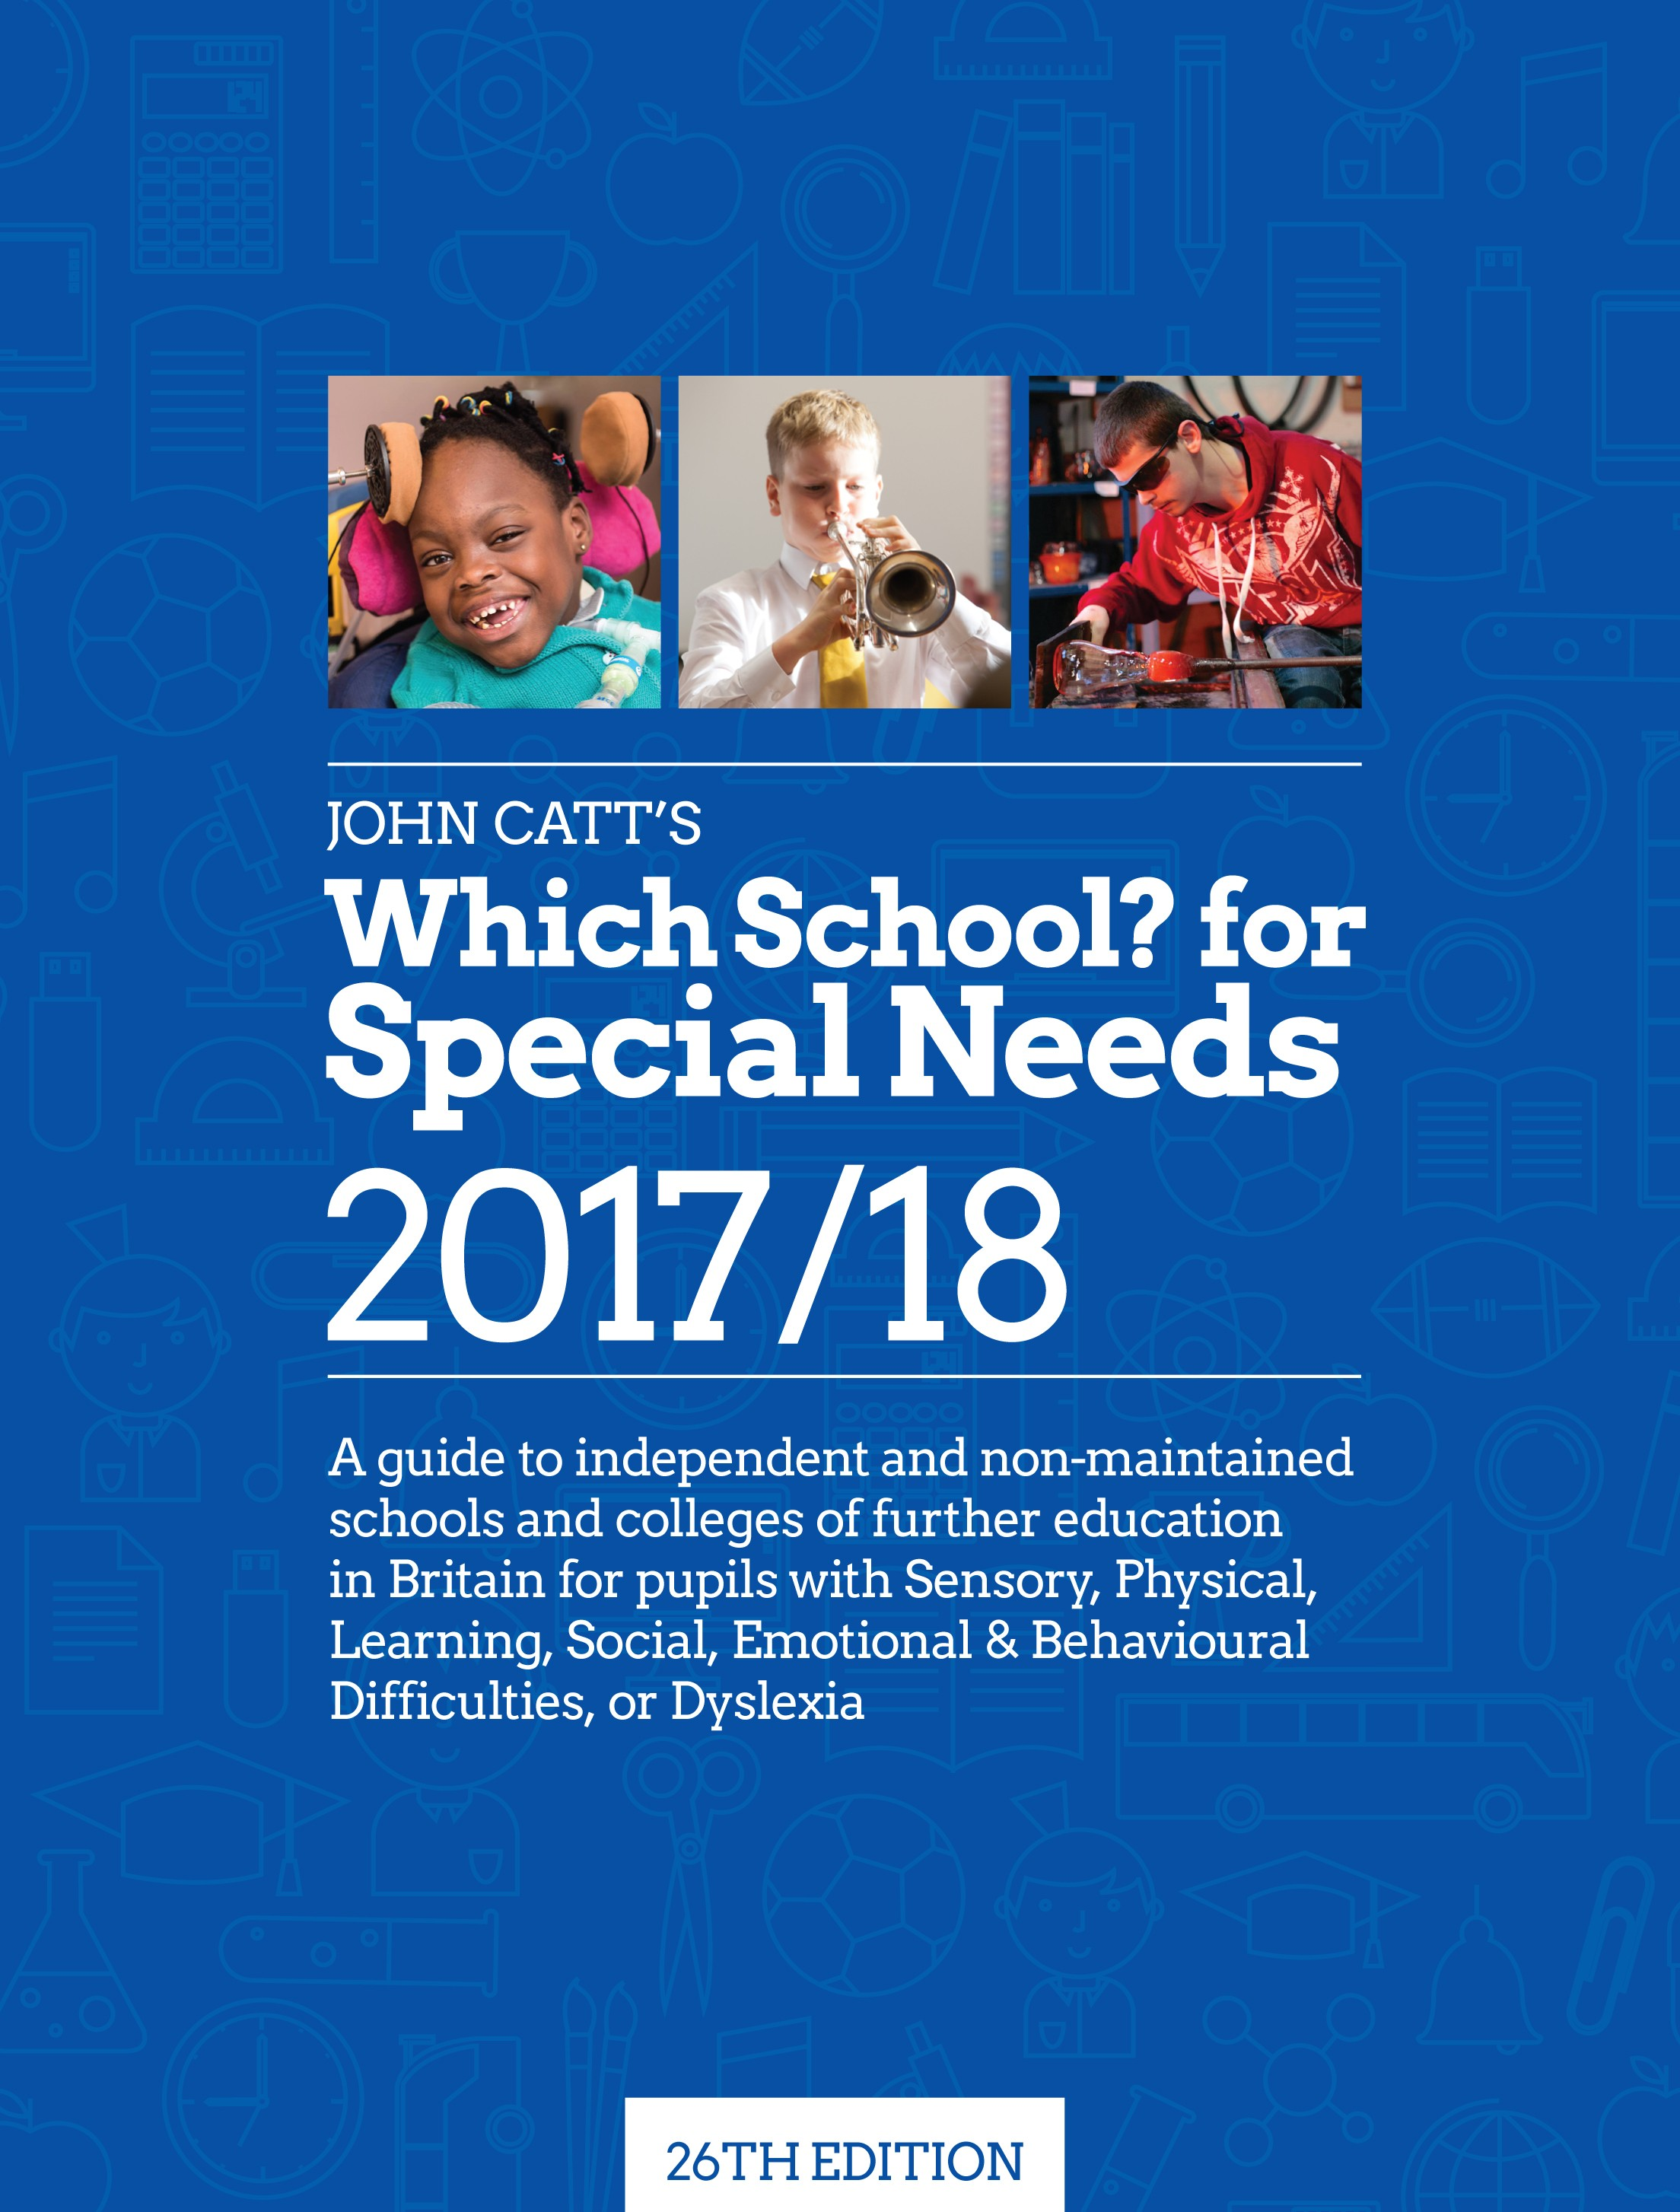 School for Special Needs 2017 18